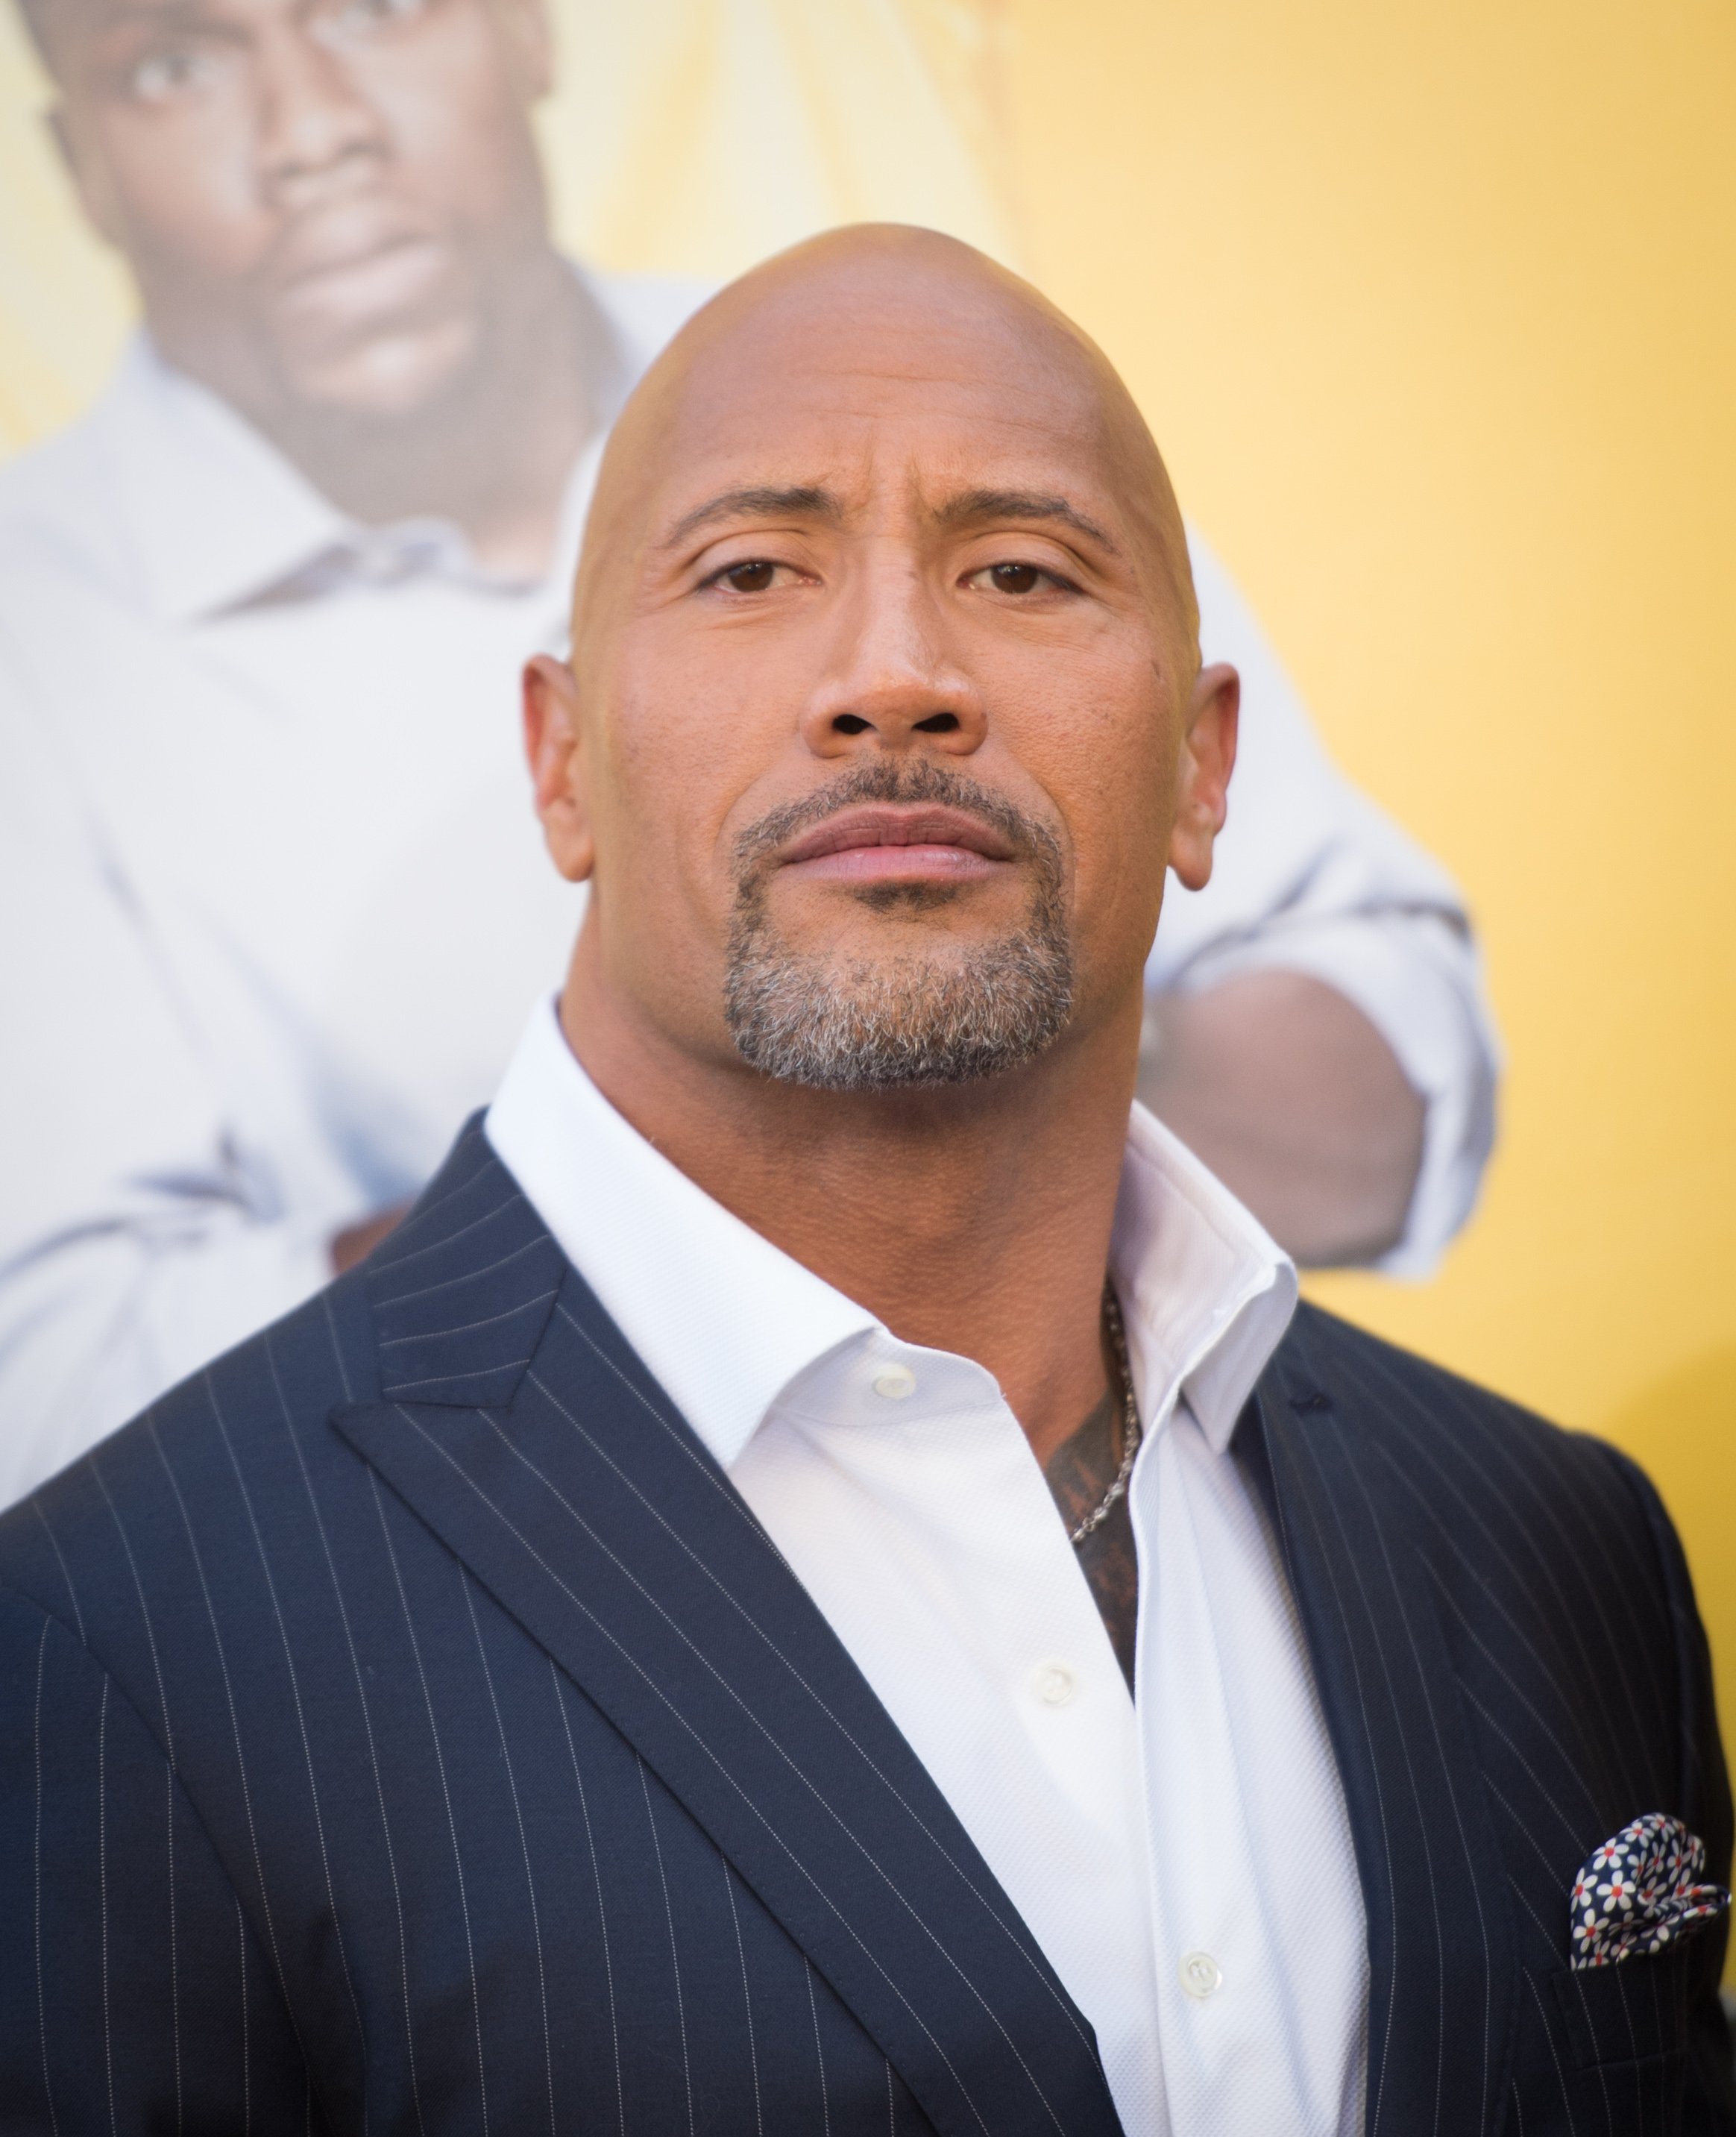 """Dwayne Johnson attends the premiere of Warner Bros. Pictures' """"Central Intelligence"""" at Westwood Village Theatre on June 10, 2016 in Westwood, California   Photo: Getty Images"""